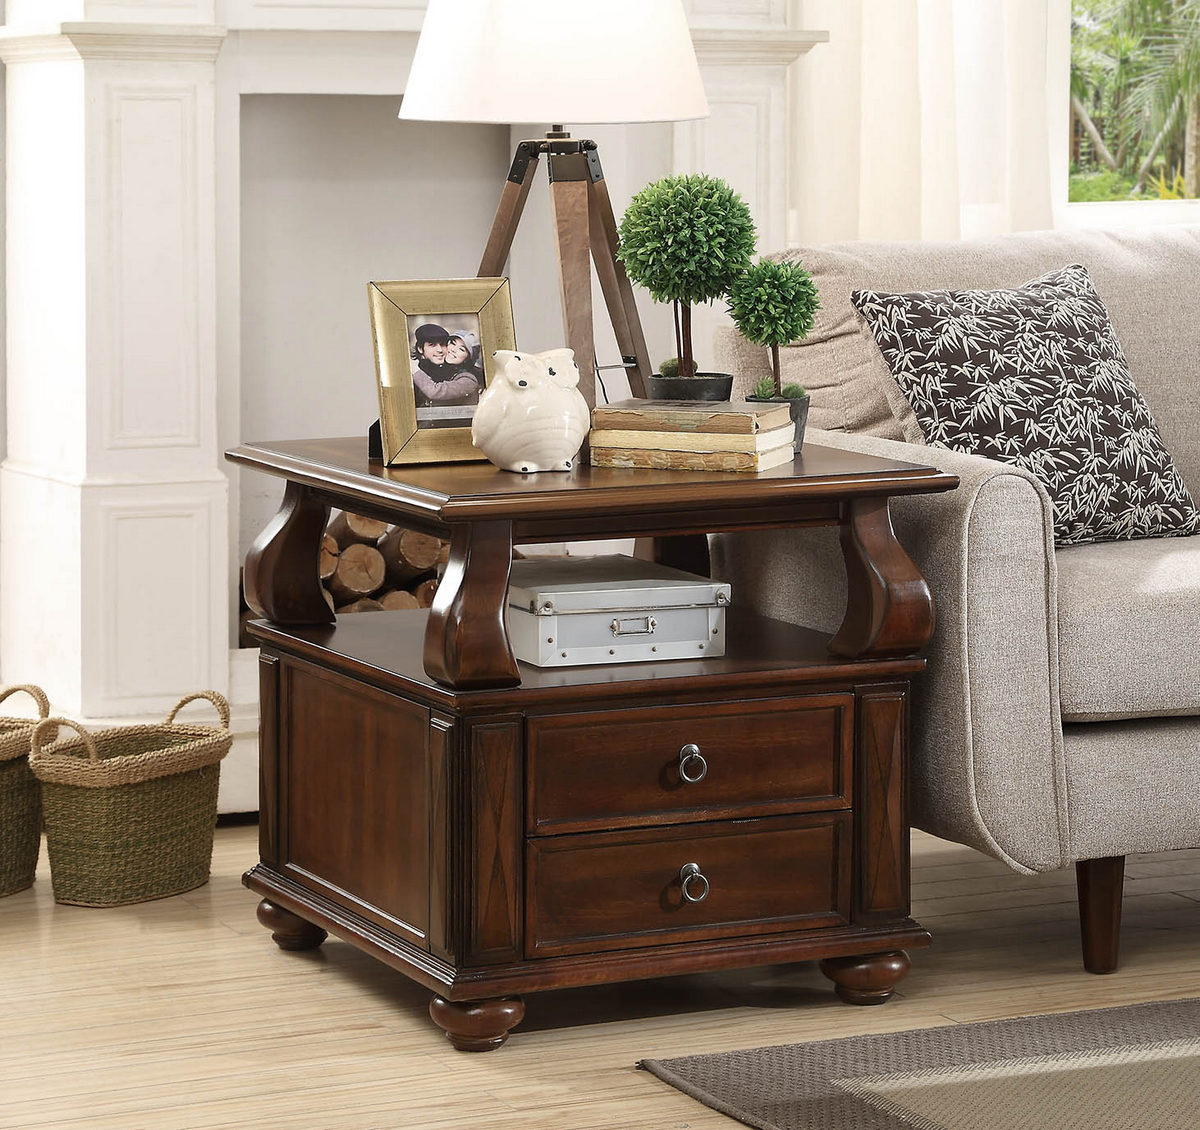 Amado End Table in Walnut - Acme Furniture 80012